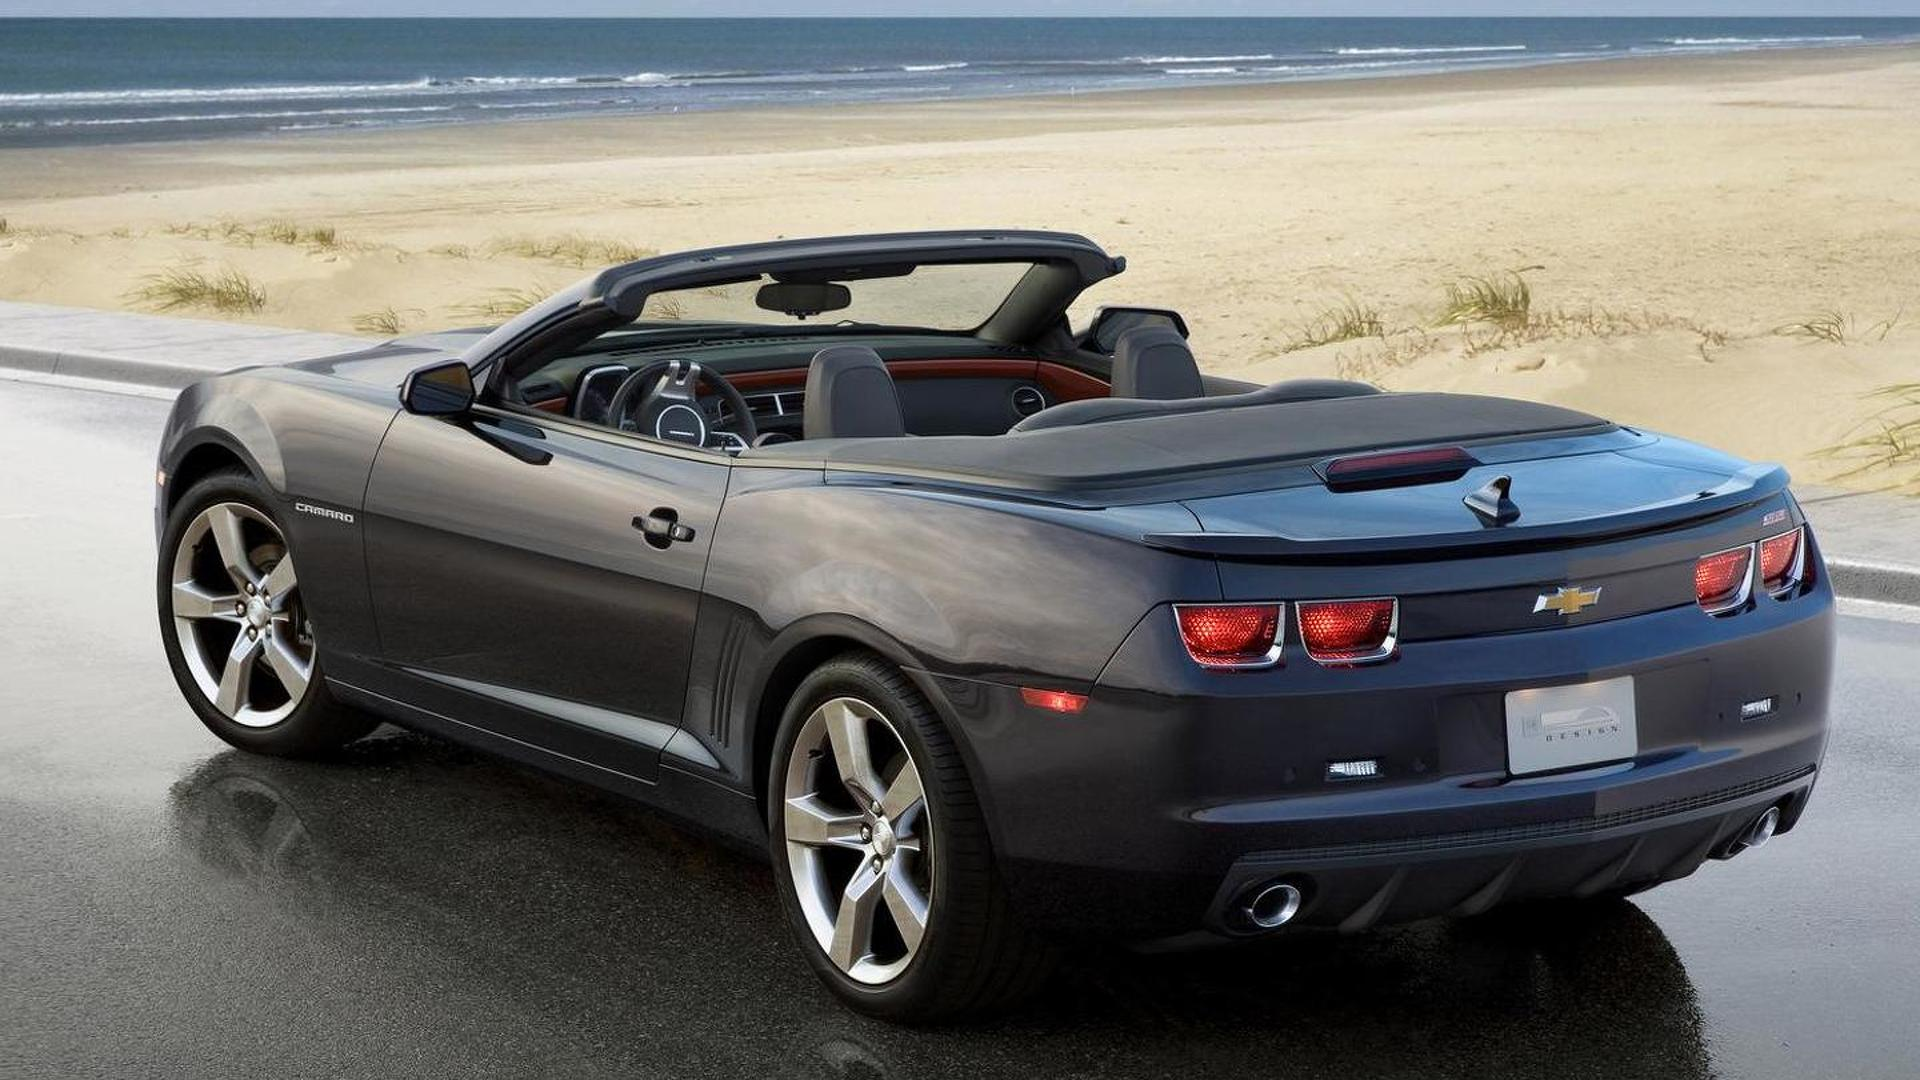 2011 Chevy Camaro Convertible will debut in LA